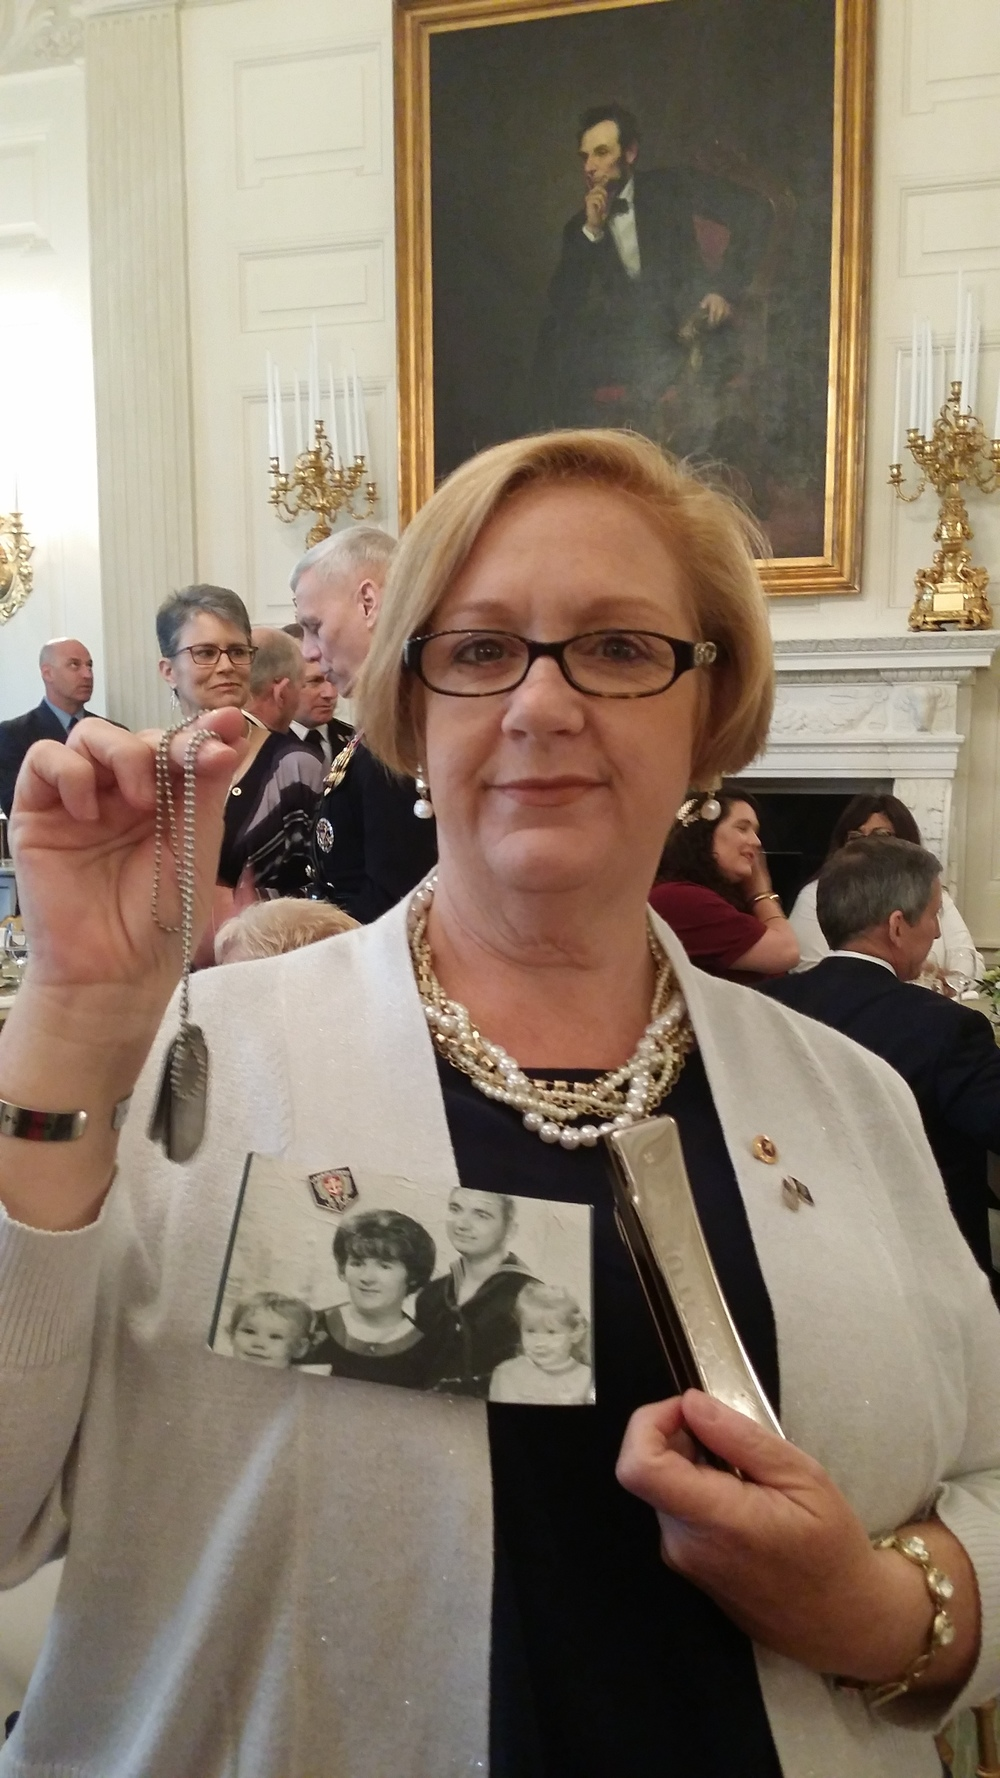 Susan in the Lincoln Room of The White House, where breakfast was held. Her father's harmonica, which was returned from Vietnam, is in her left hand. The dog tags she holds in her right hand, a gift from Jeanette Chervony, bear the names of the fathers of the first six who went on the 2 Sides Project trip to Vietnam.  Photo courtesy Susan Mitchell-Mattera.